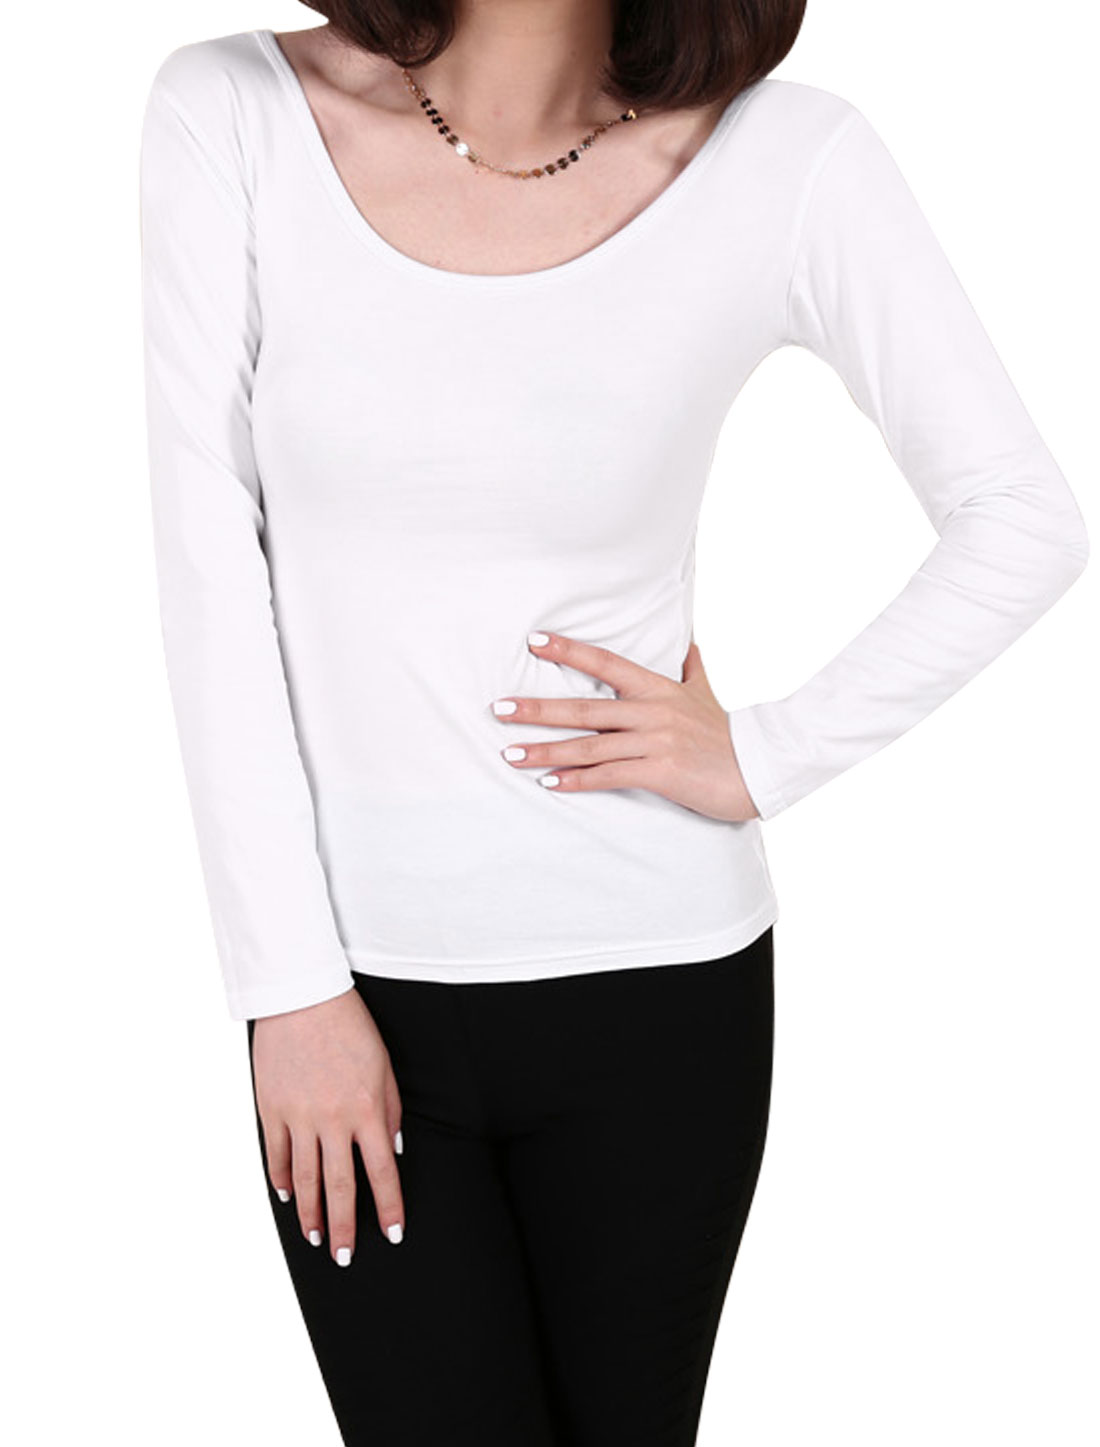 Ladies White Pullover Lace Up Back Long Sleeves Casaul Top M